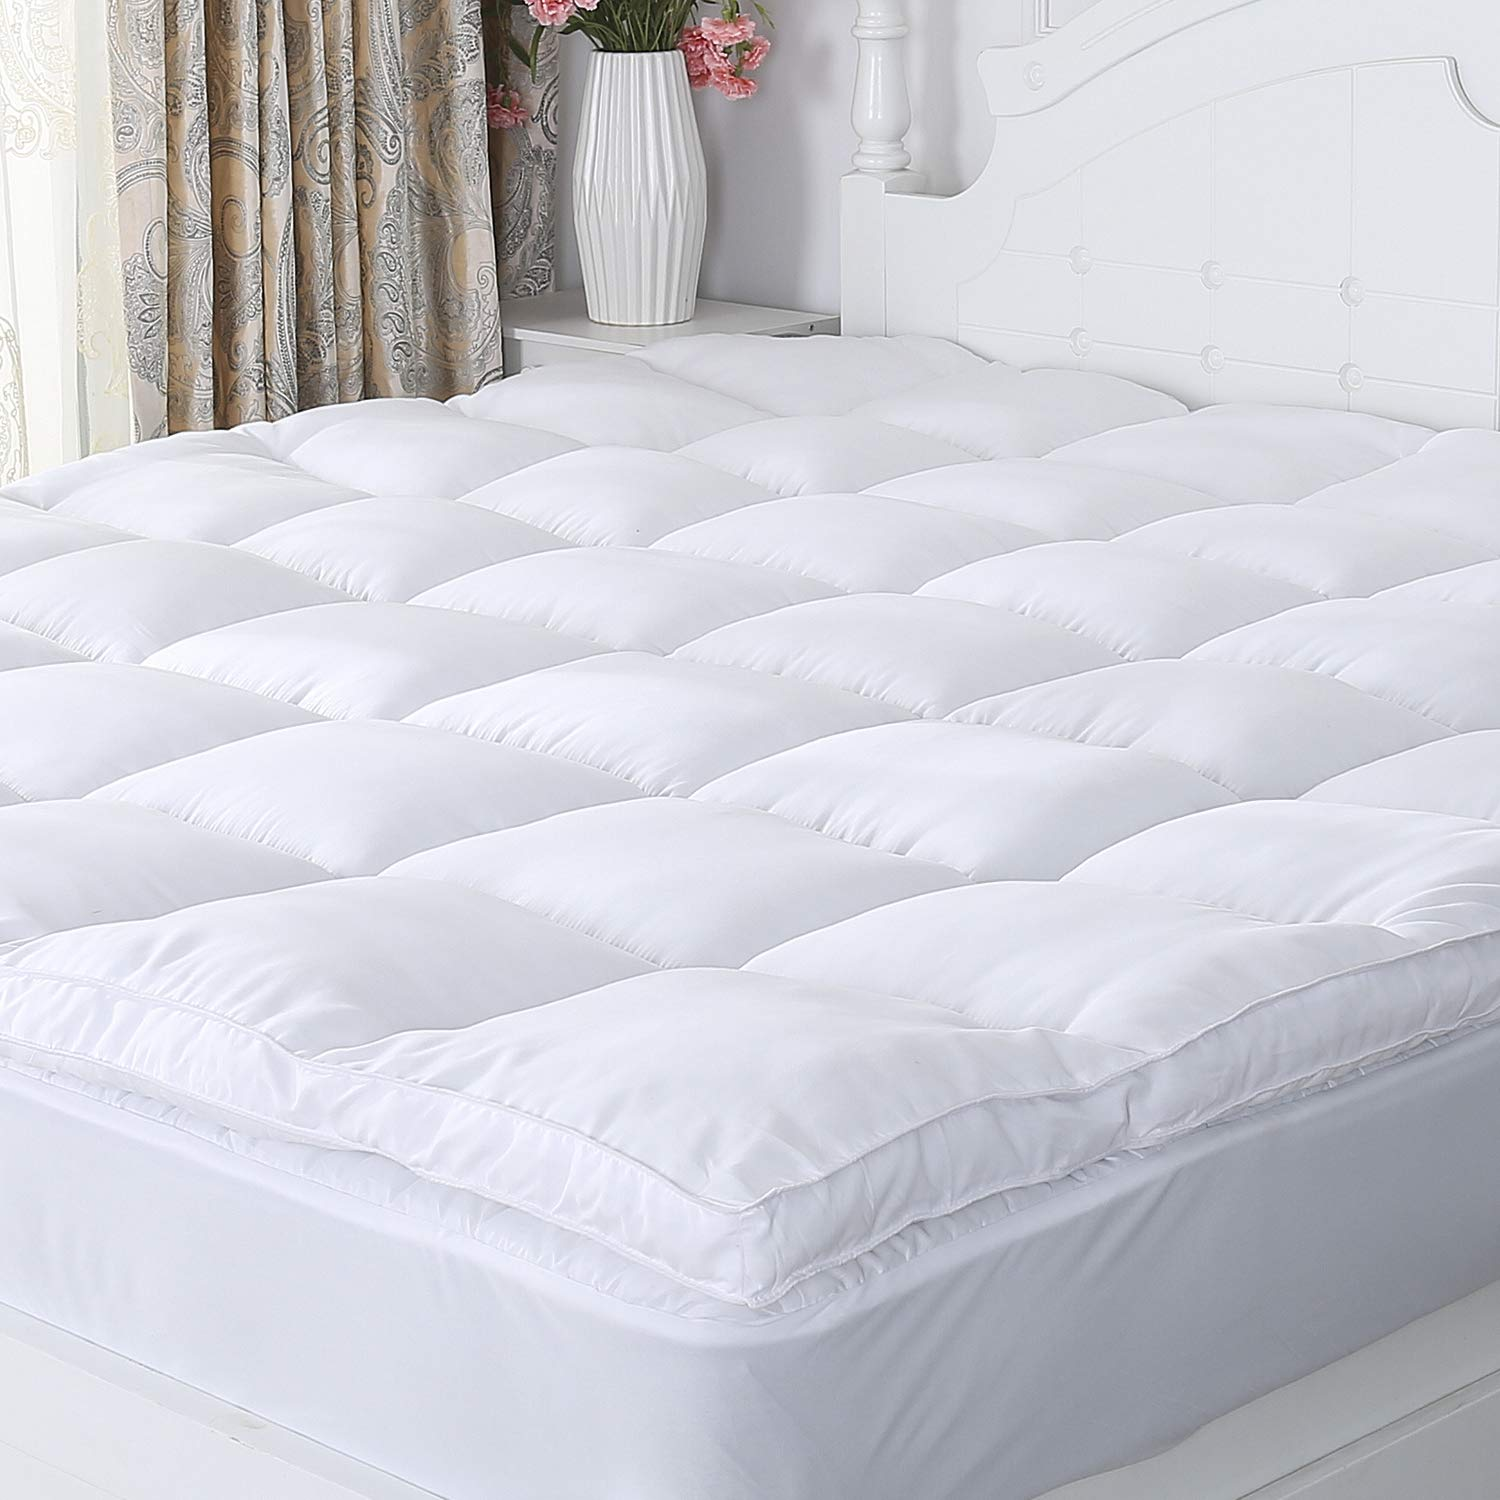 Naluka Mattress Topper Queen Size, Premium Hotel Collection Down Alternative Quilted Featherbed Luxury Microfiber Mattress Pad 2 Inch Thick Mattress Cover(60''80''